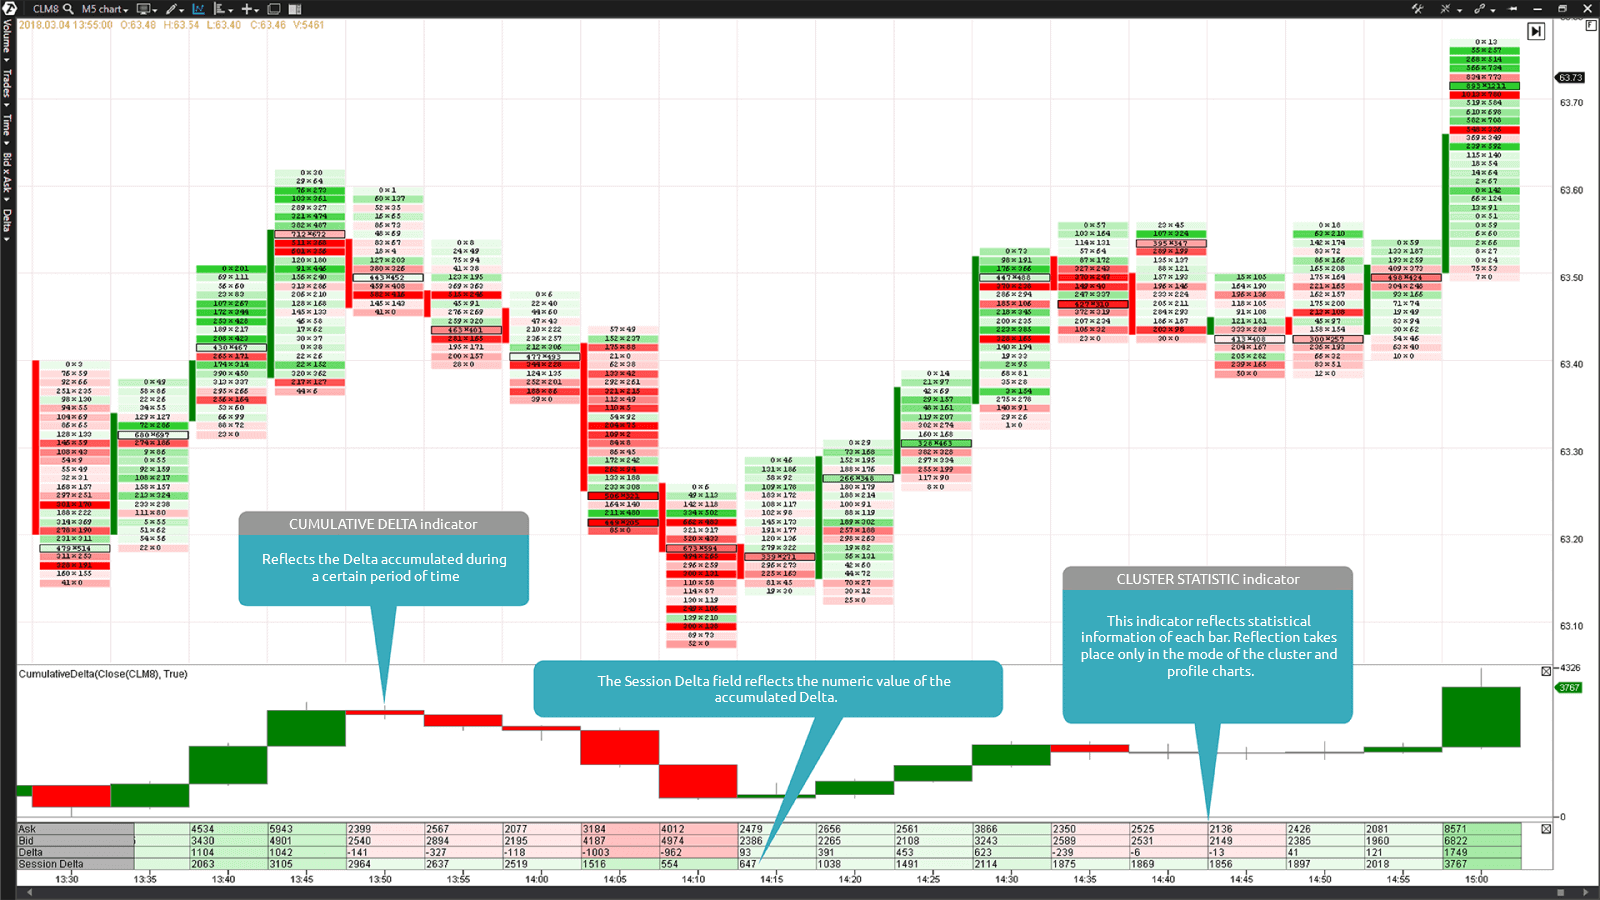 The Bid x Ask Footprint chart and Cumulative Delta and Cluster Statistic indicators in the lower part of the chart